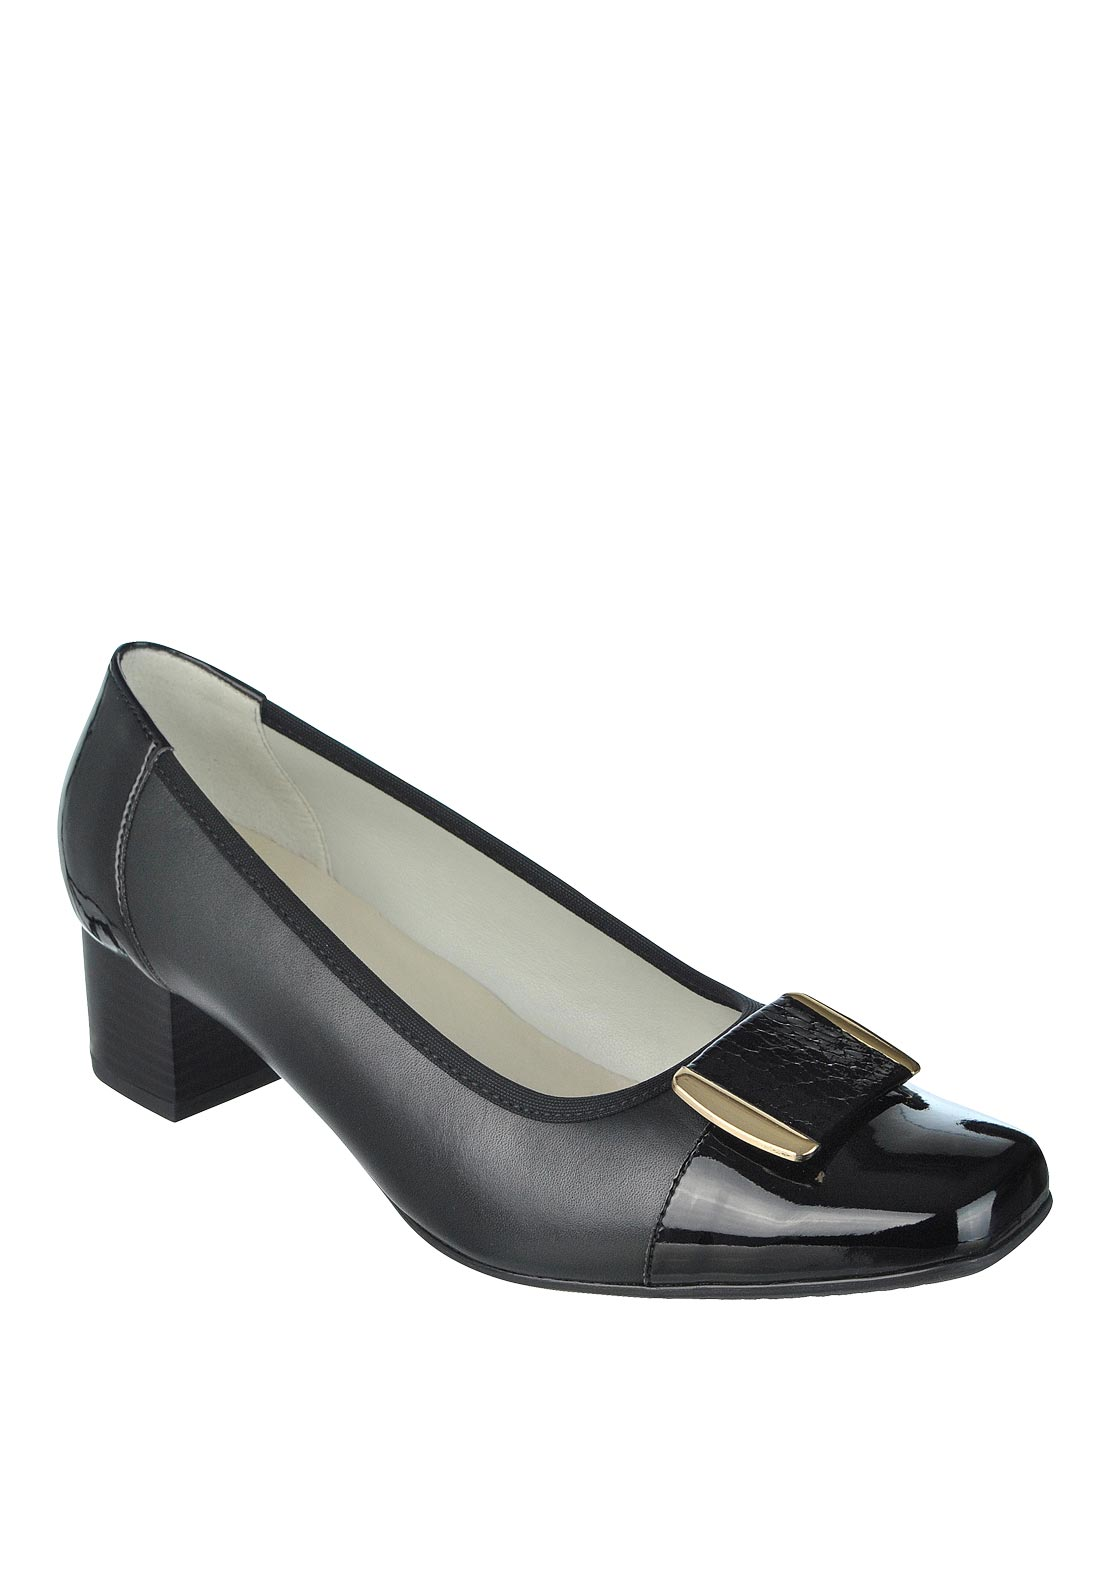 Dubarry Womens Hanson Leather & Patent Shoe, Black